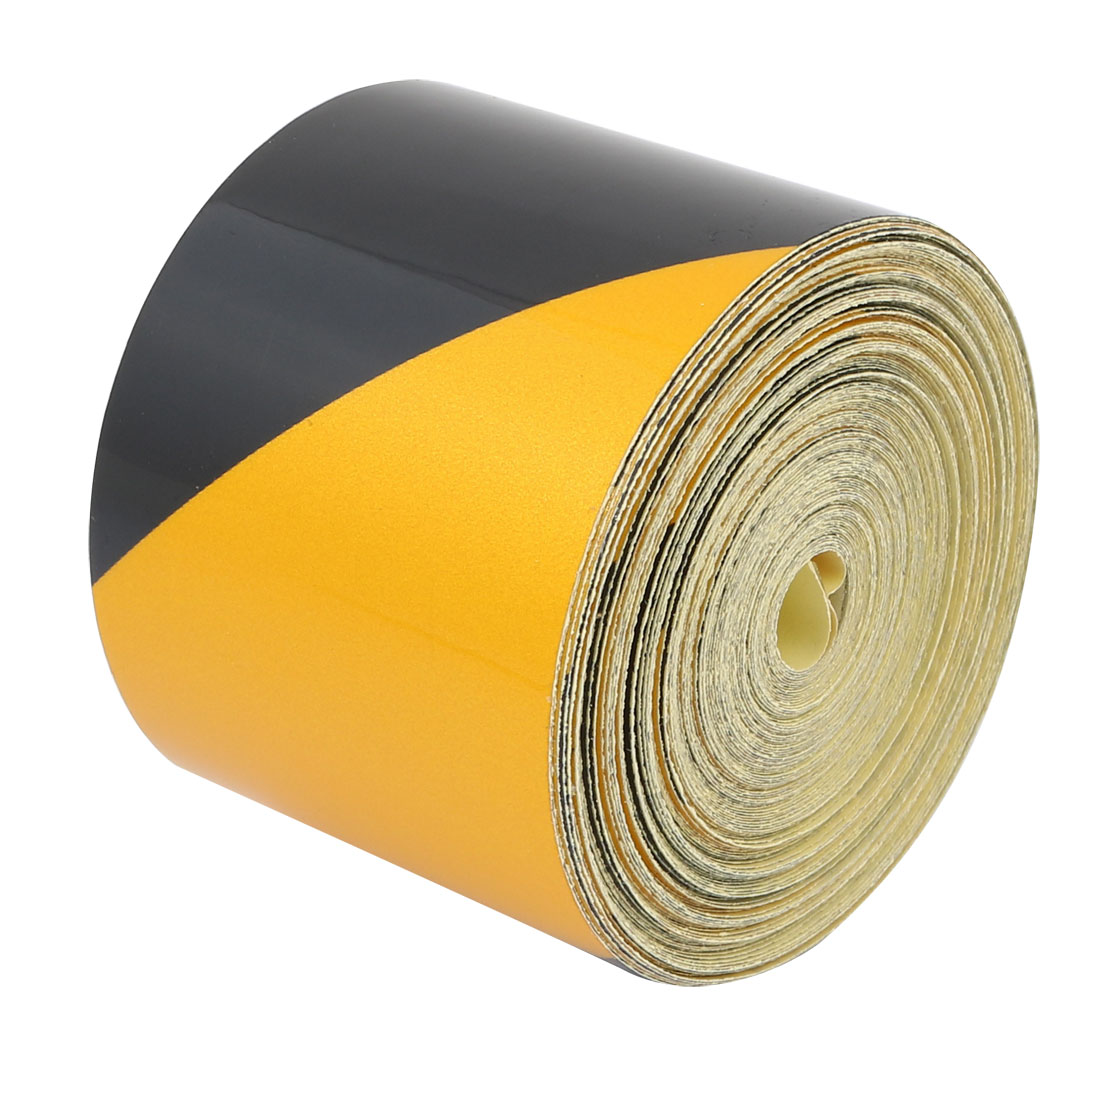 15M Long 5cm Wide Single Sided Adhesive Reflective Warning Tape Yellow Black